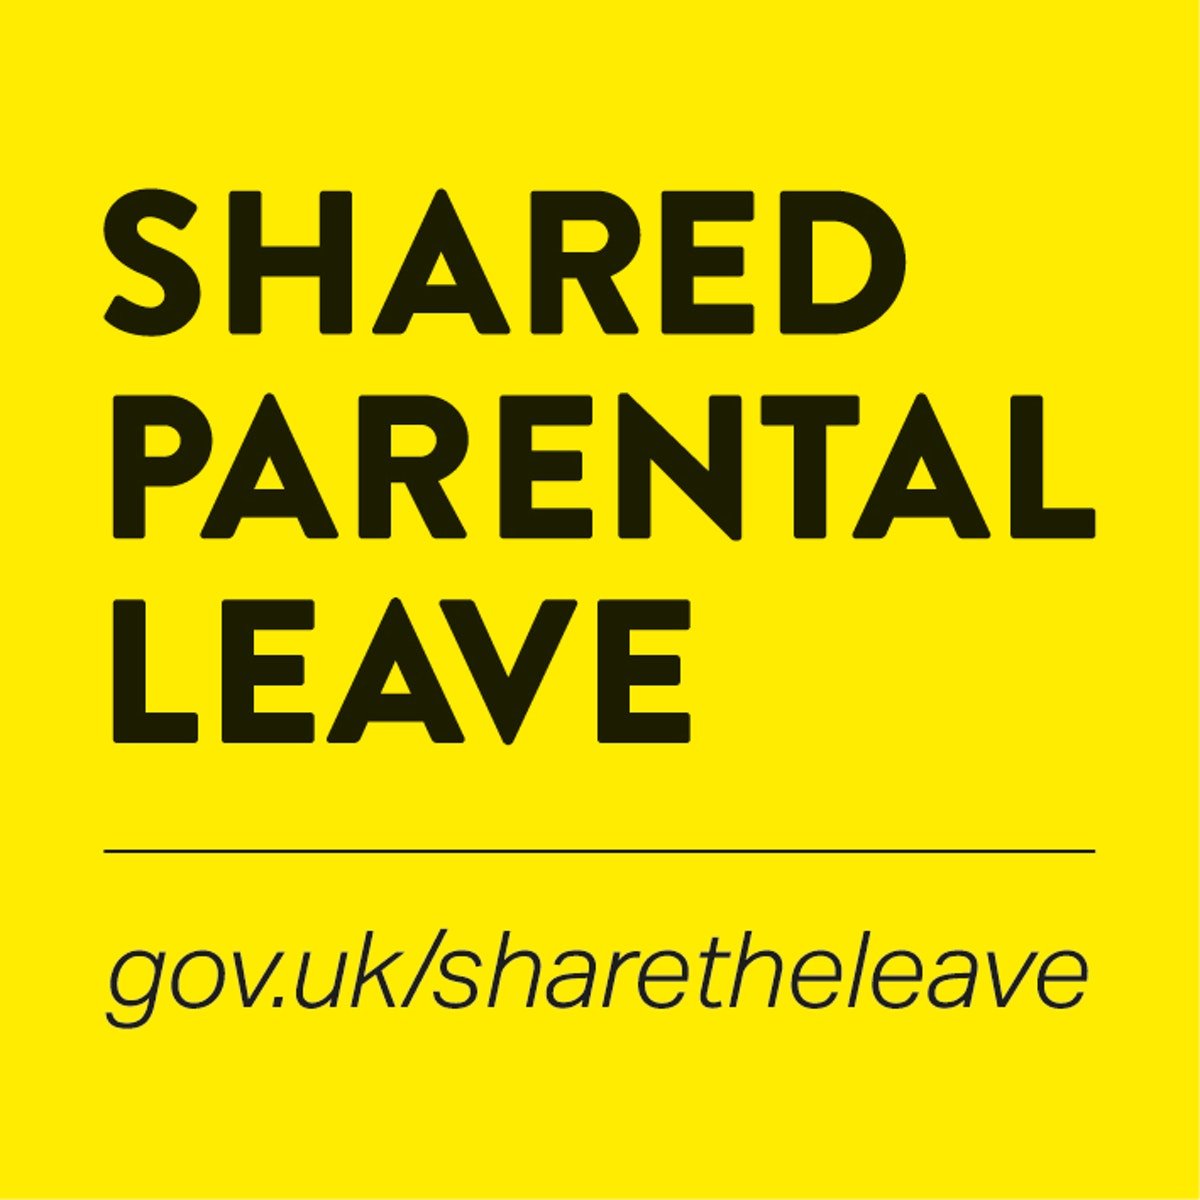 The Government's Shared Parental Leave Campaign